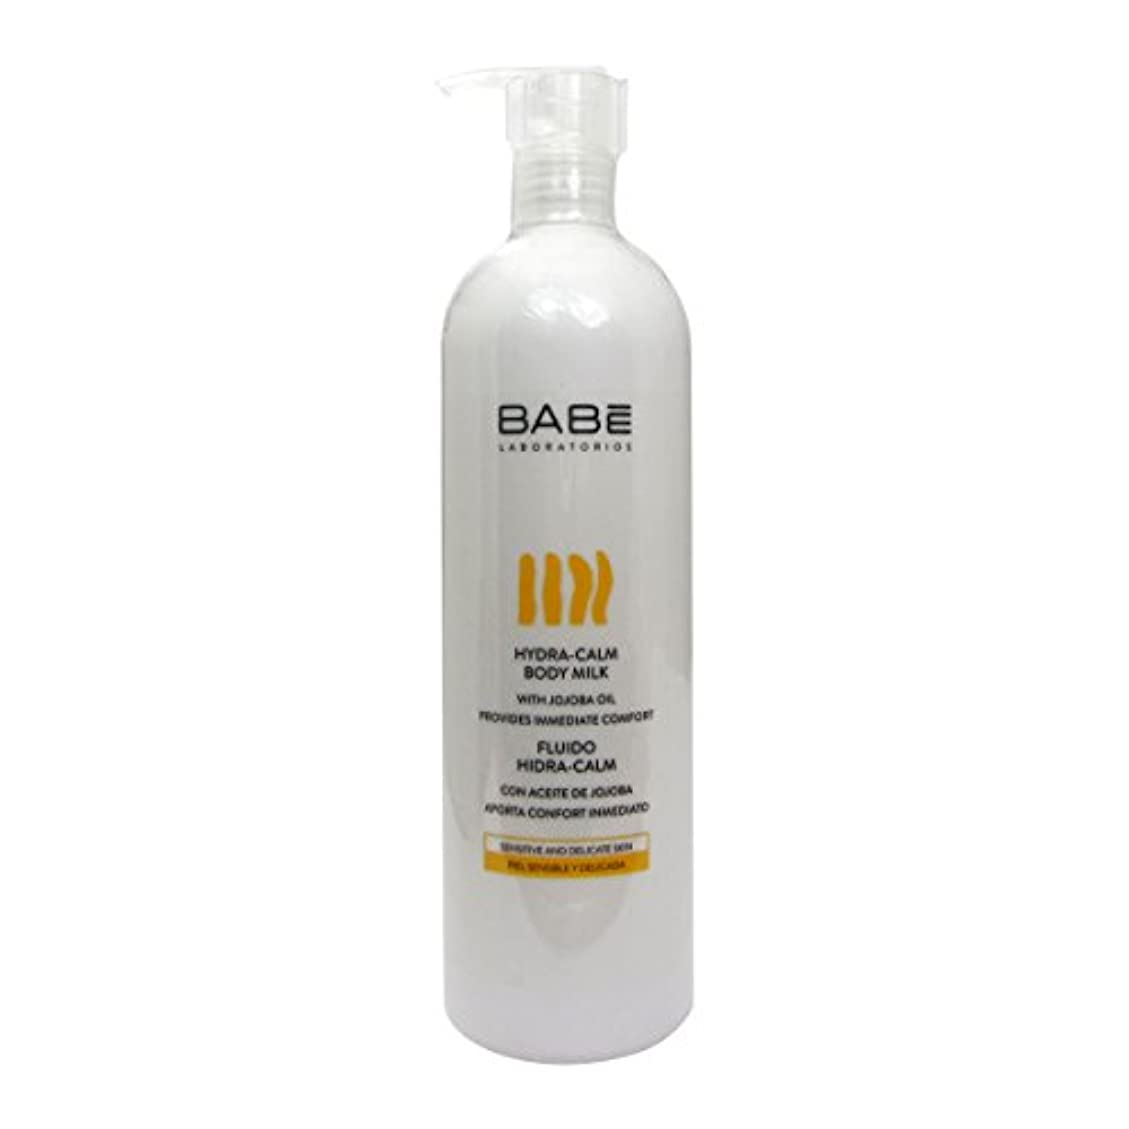 頭昇進上陸Babe Hydra Calm Body Fluid 500ml [並行輸入品]